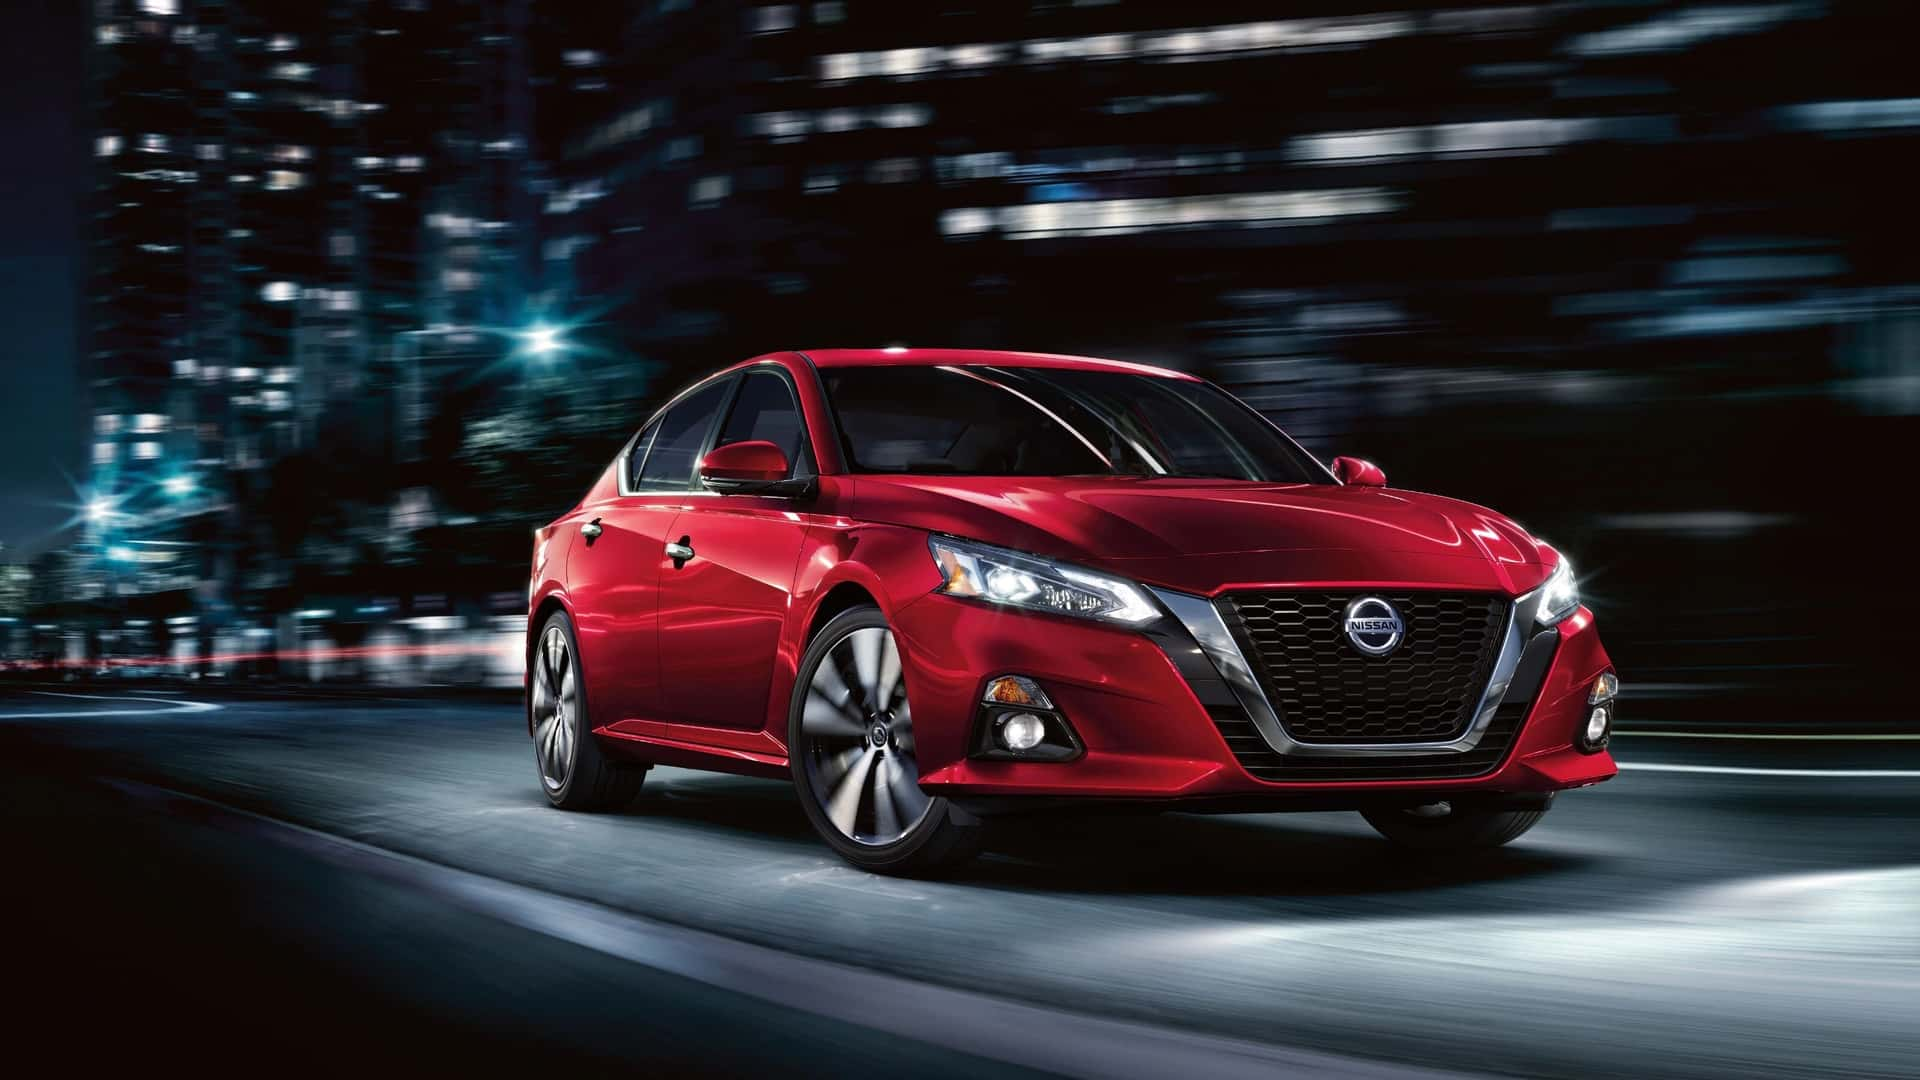 Shop for a New Nissan Online Near Orange County CA